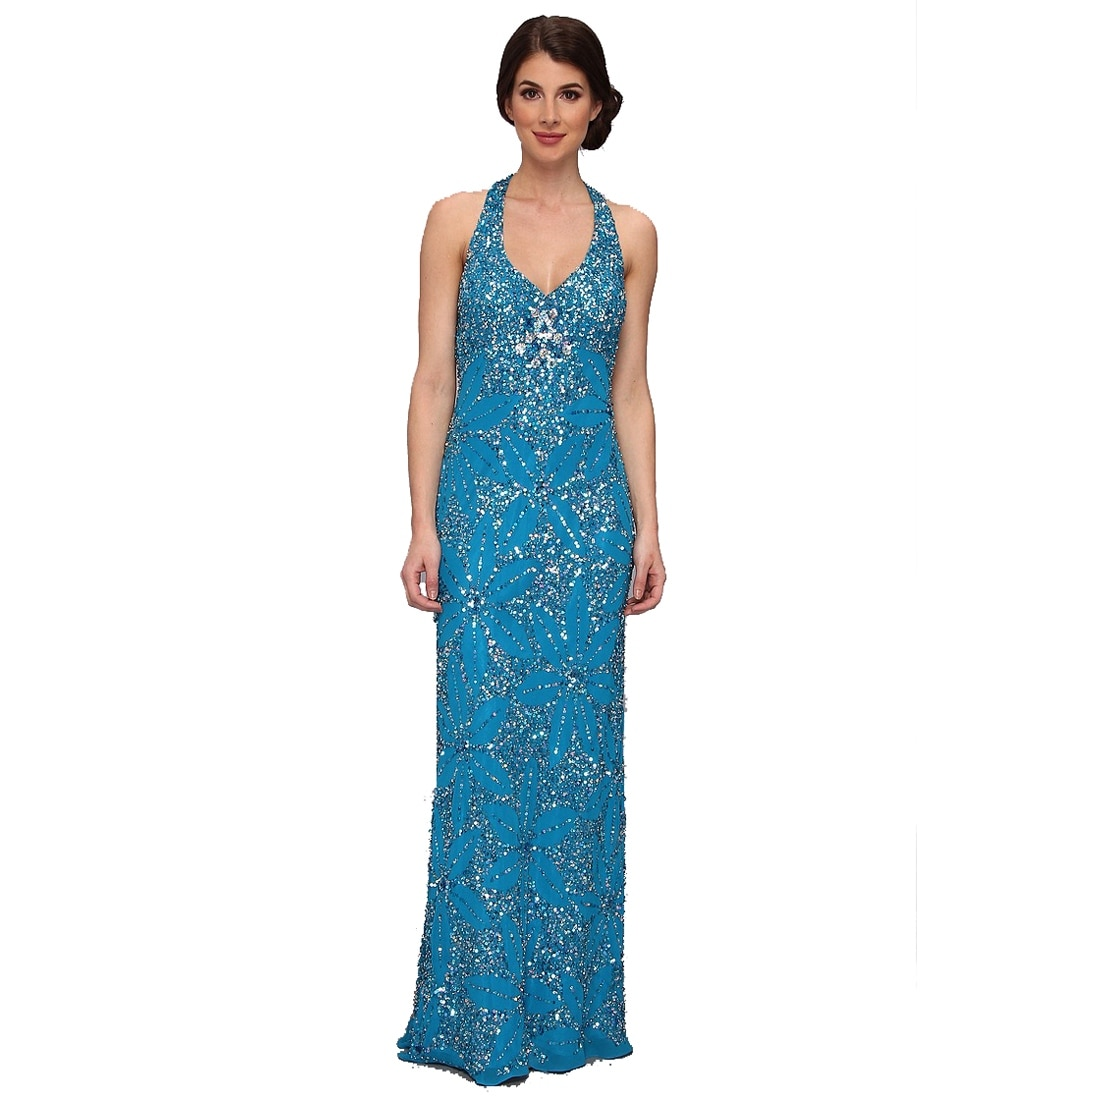 0bd81d37ff01 Adrianna Papell Dresses | Find Great Women's Clothing Deals Shopping at  Overstock